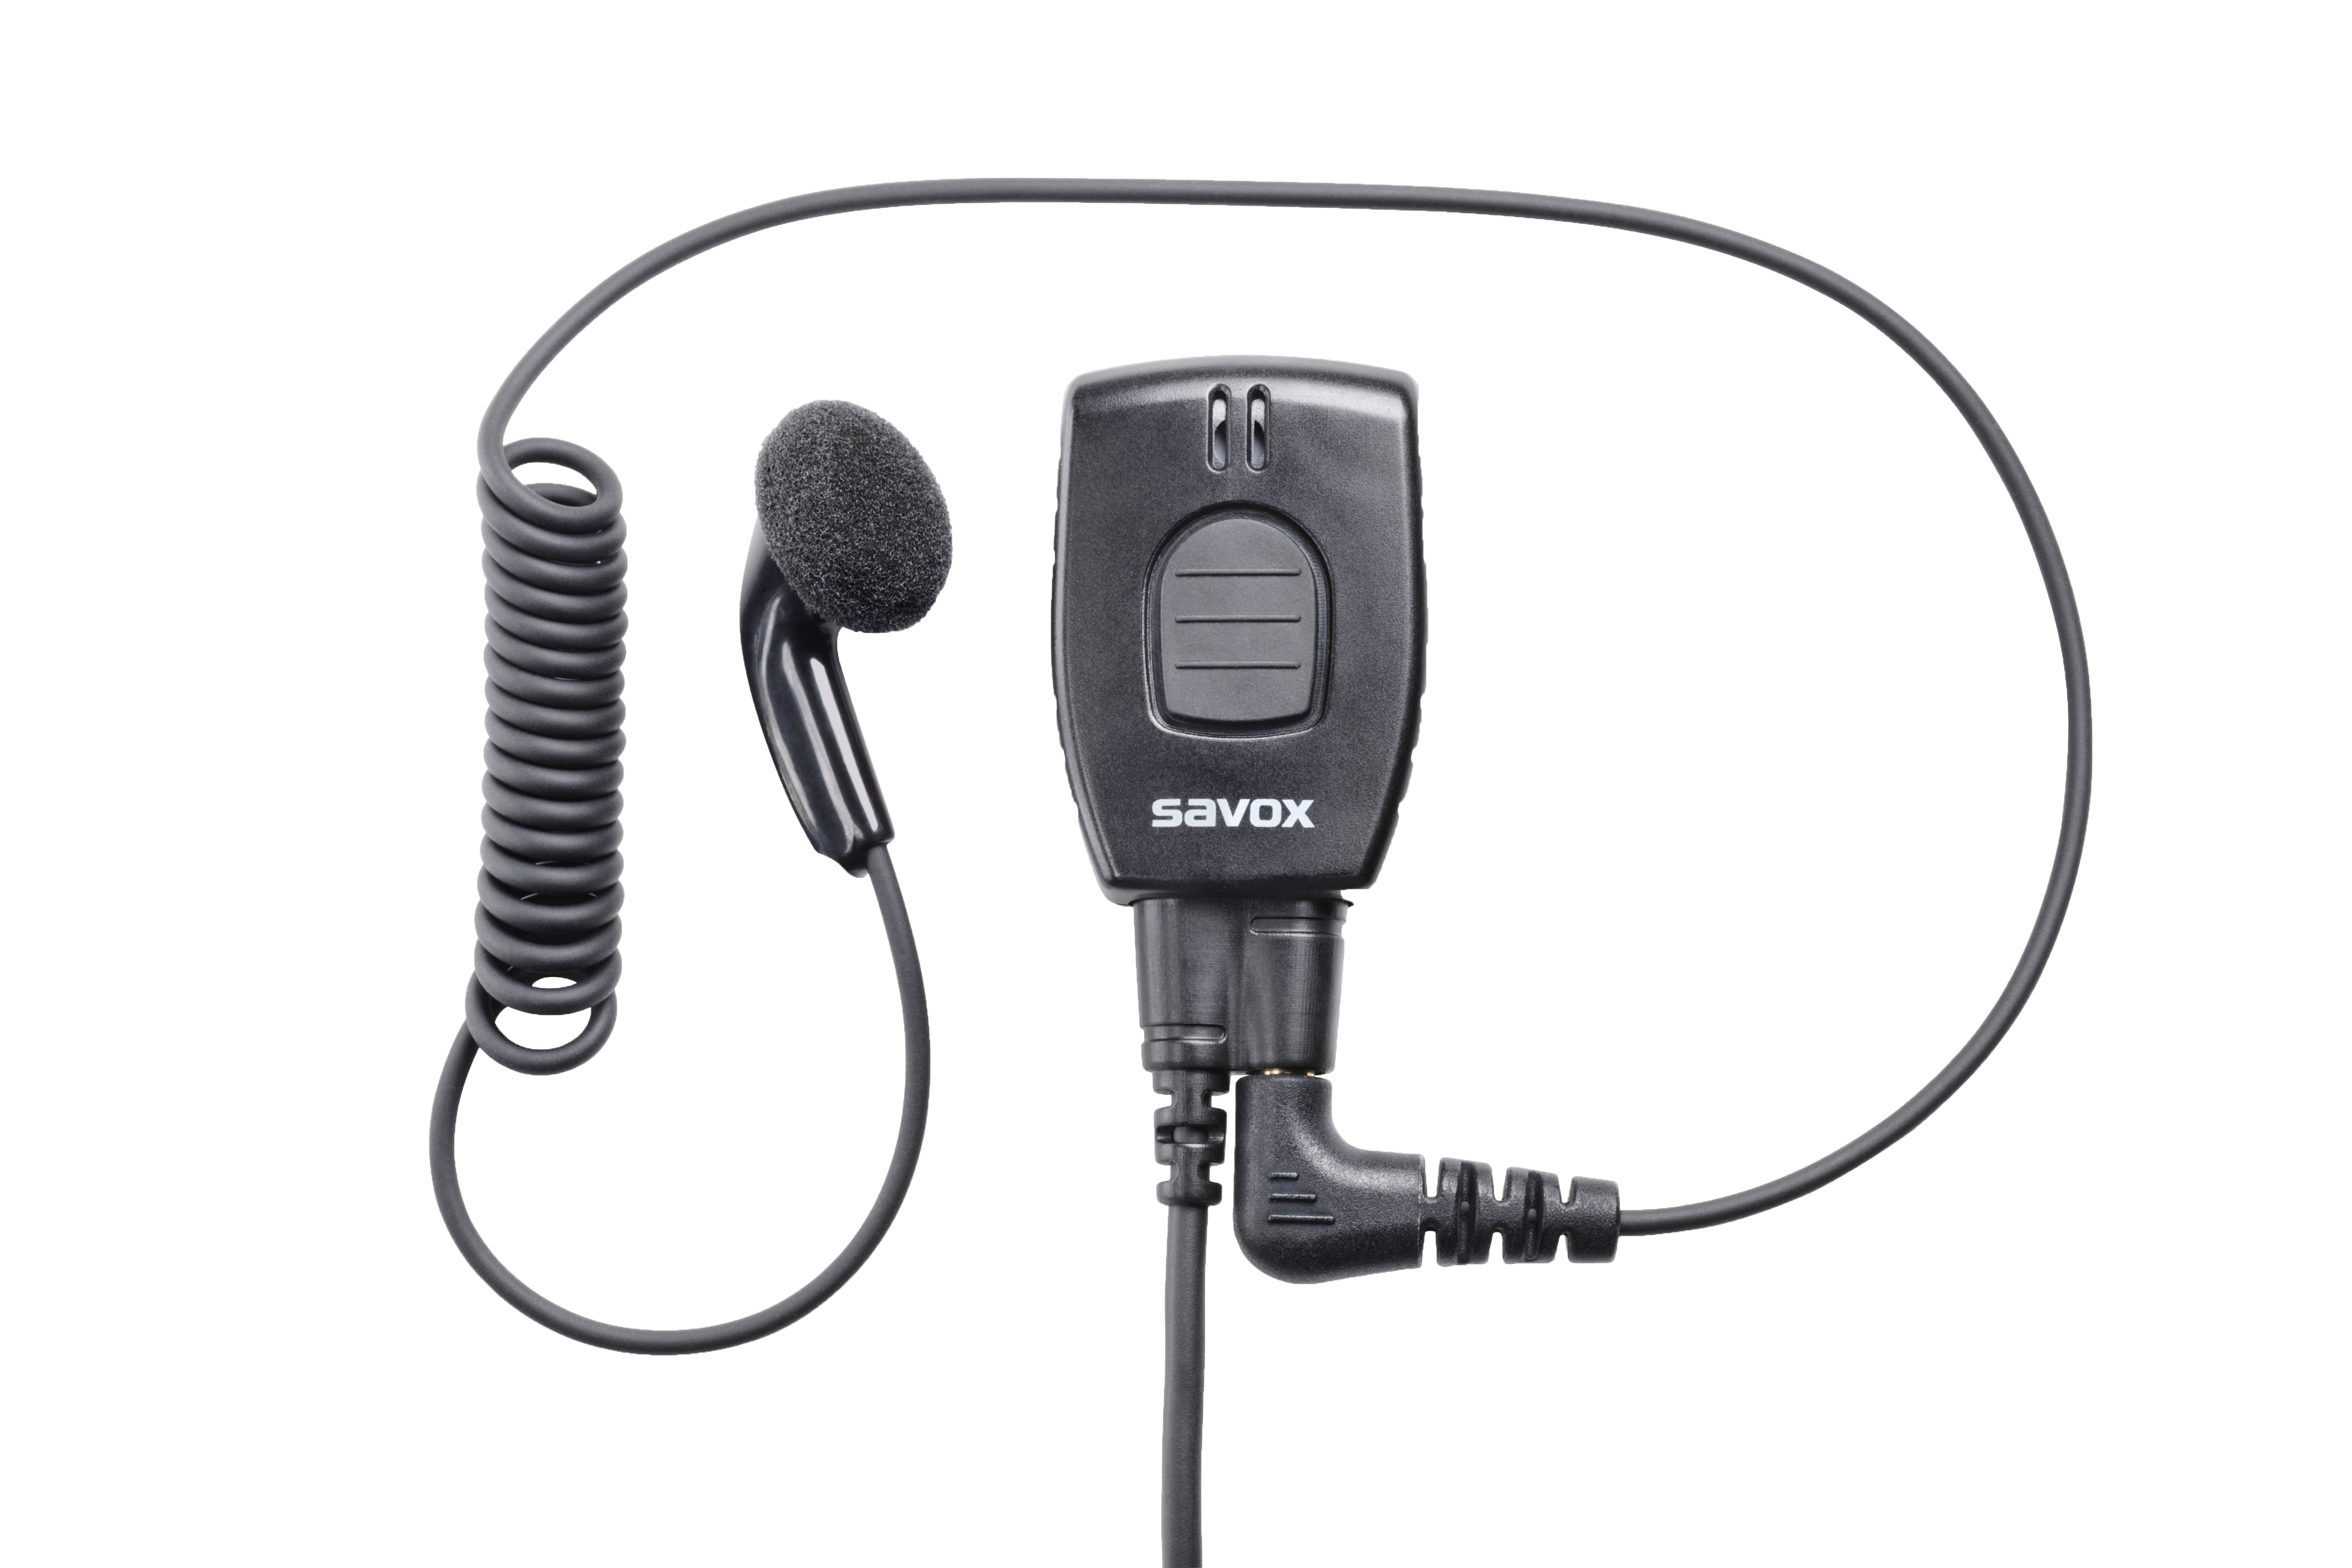 We are happy to introduce the new Savox Promate Lite COM, push-to-talk device